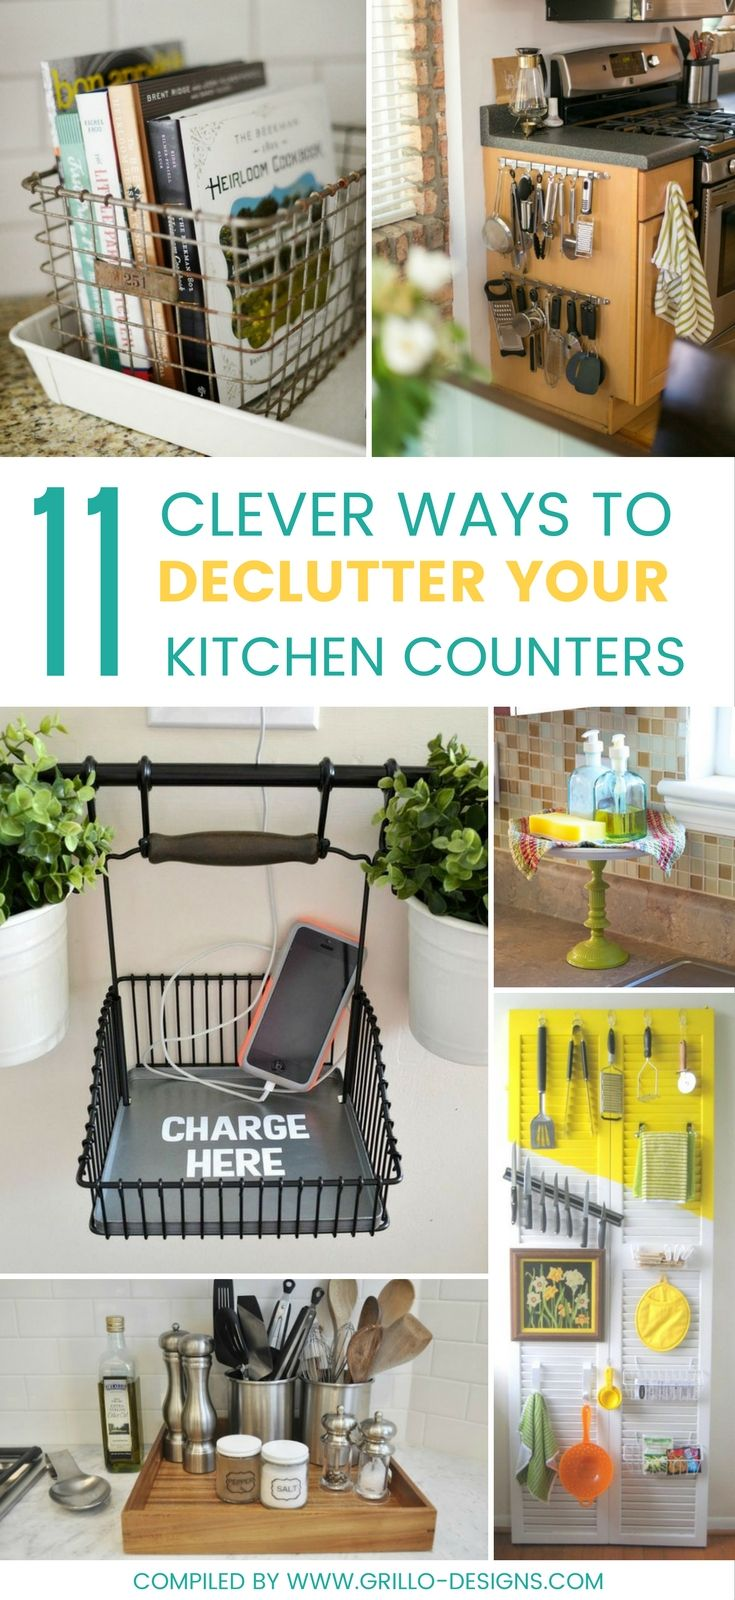 Declutter kitchen counters - Check out these 11 clever ways you can rid your kitchen counters of clutter and be more organized!